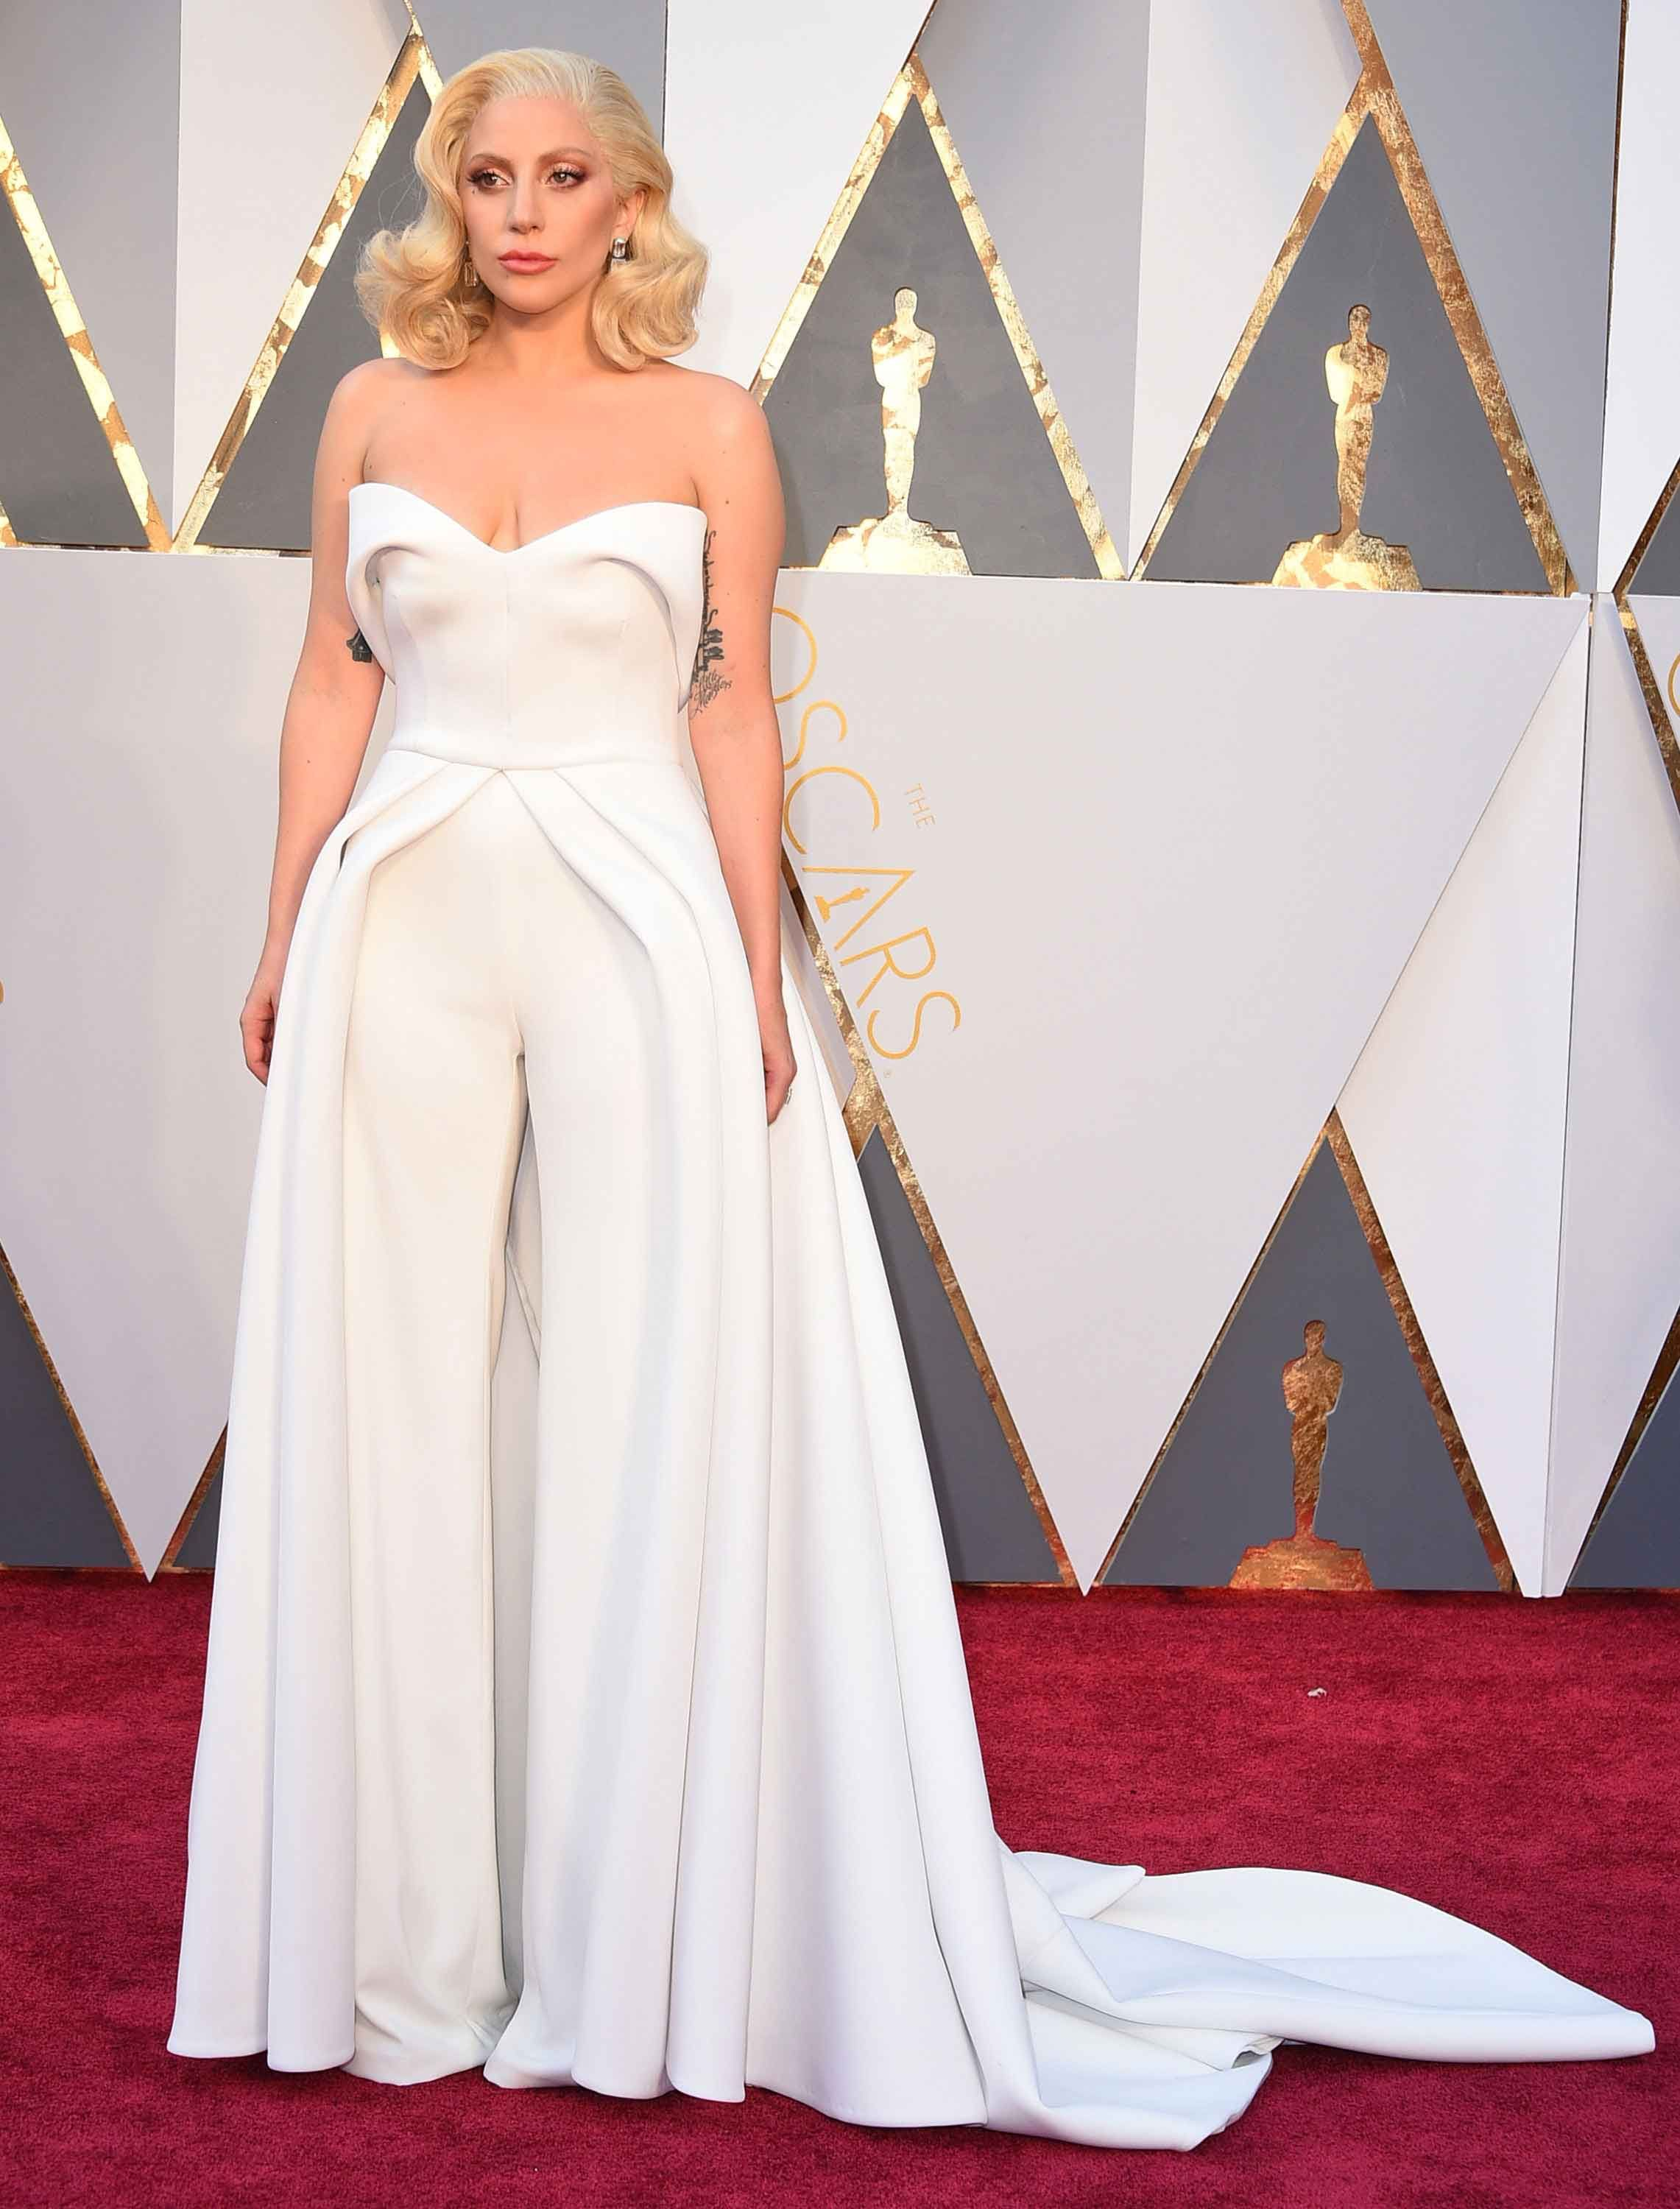 325504414239 55 Best Oscars Dresses of All Time - Most Iconic Oscar Red Carpet Gowns